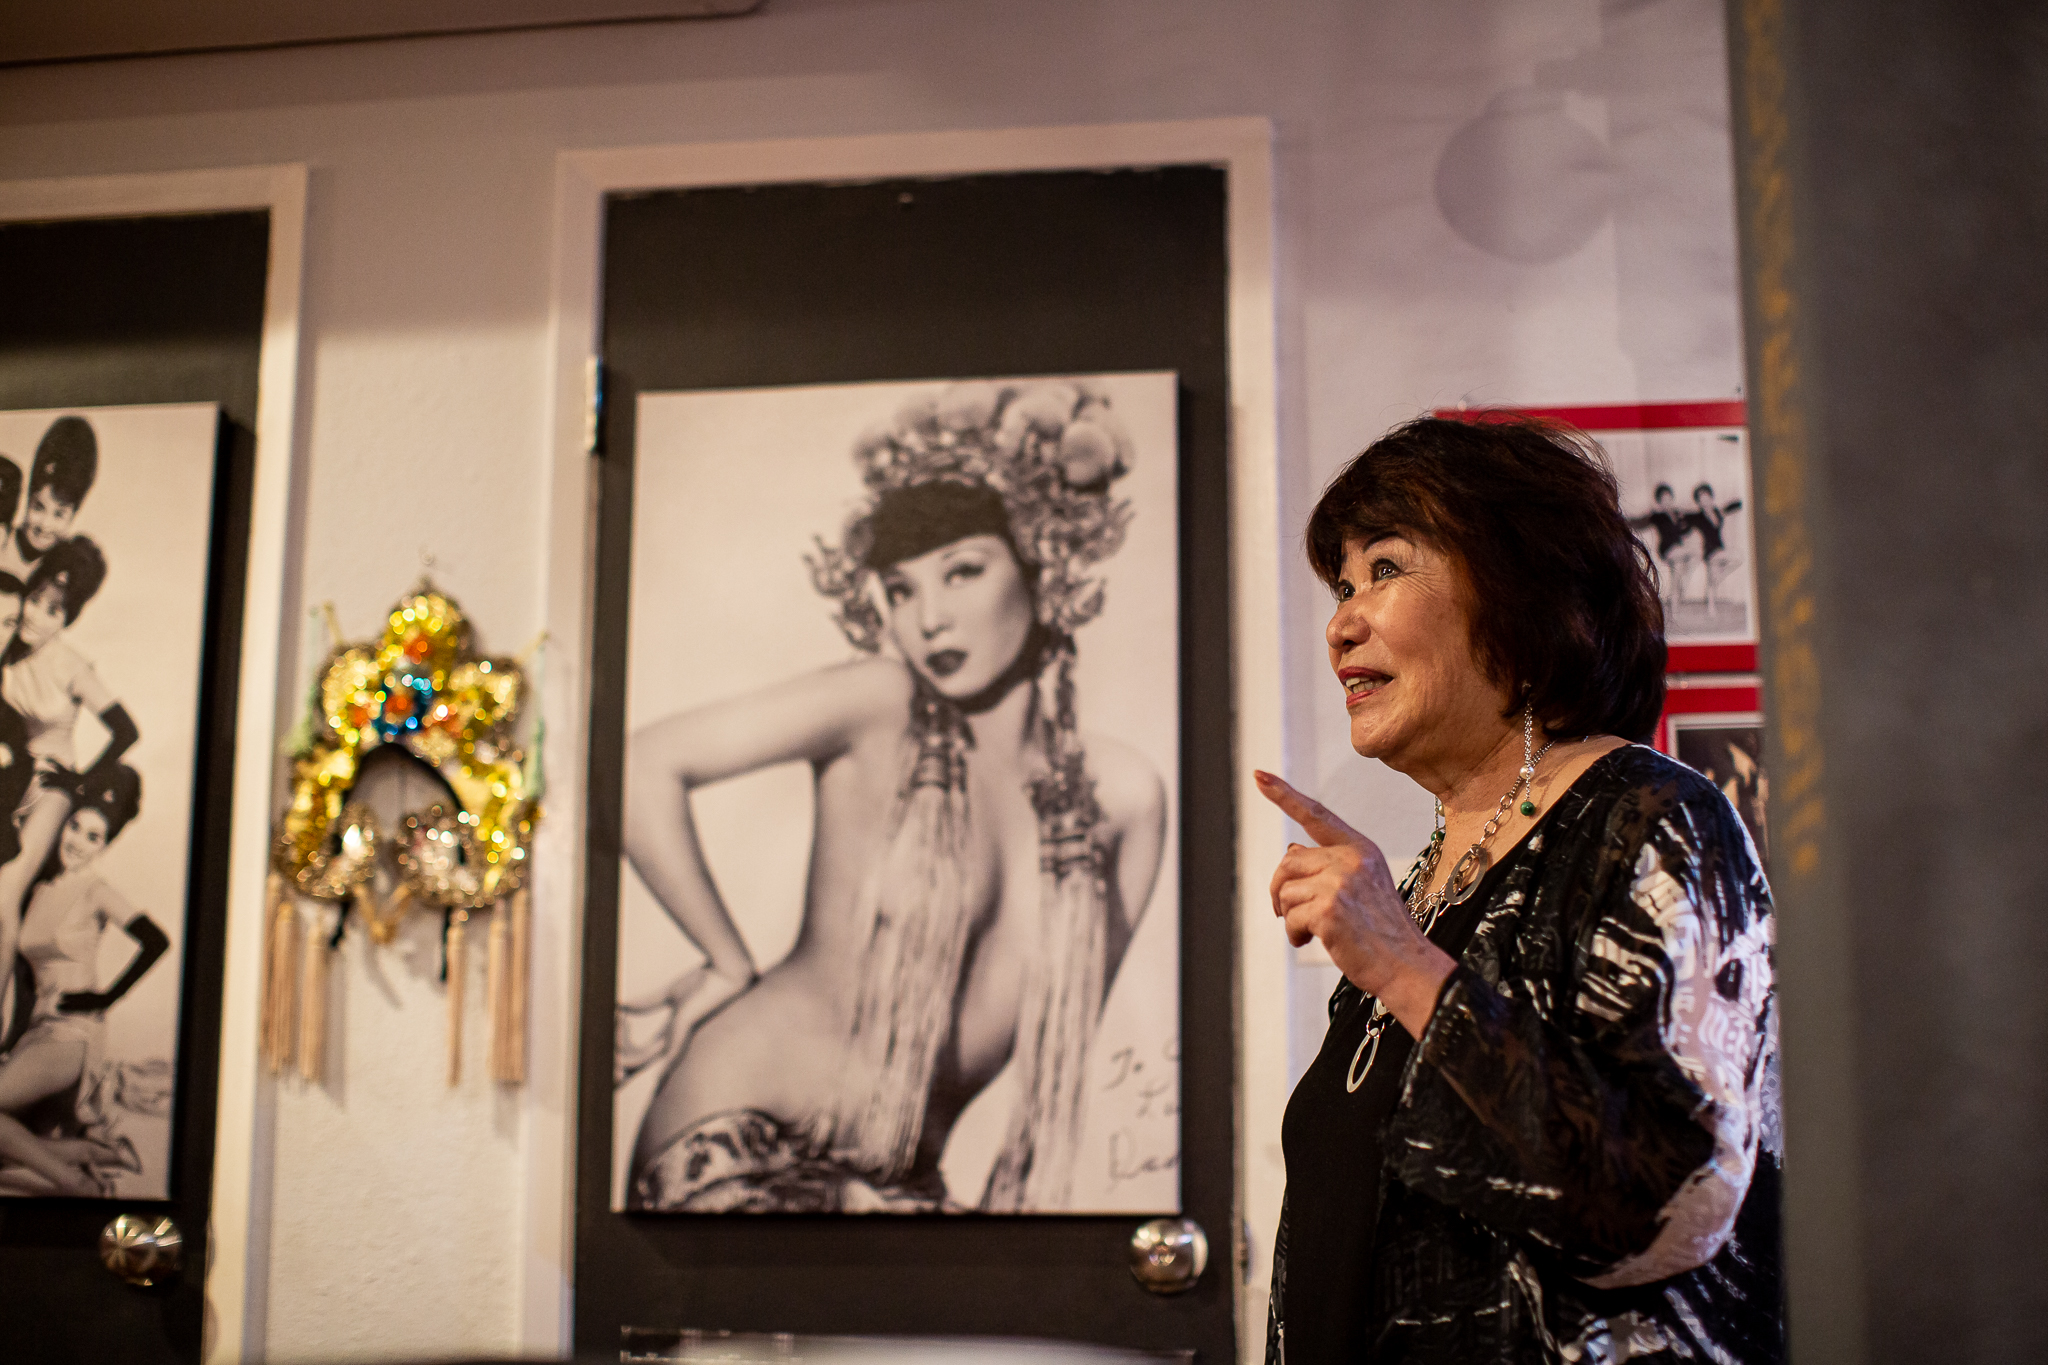 The Showgirl Magic Museum is the best kept secret in San Francisco's Chinatown